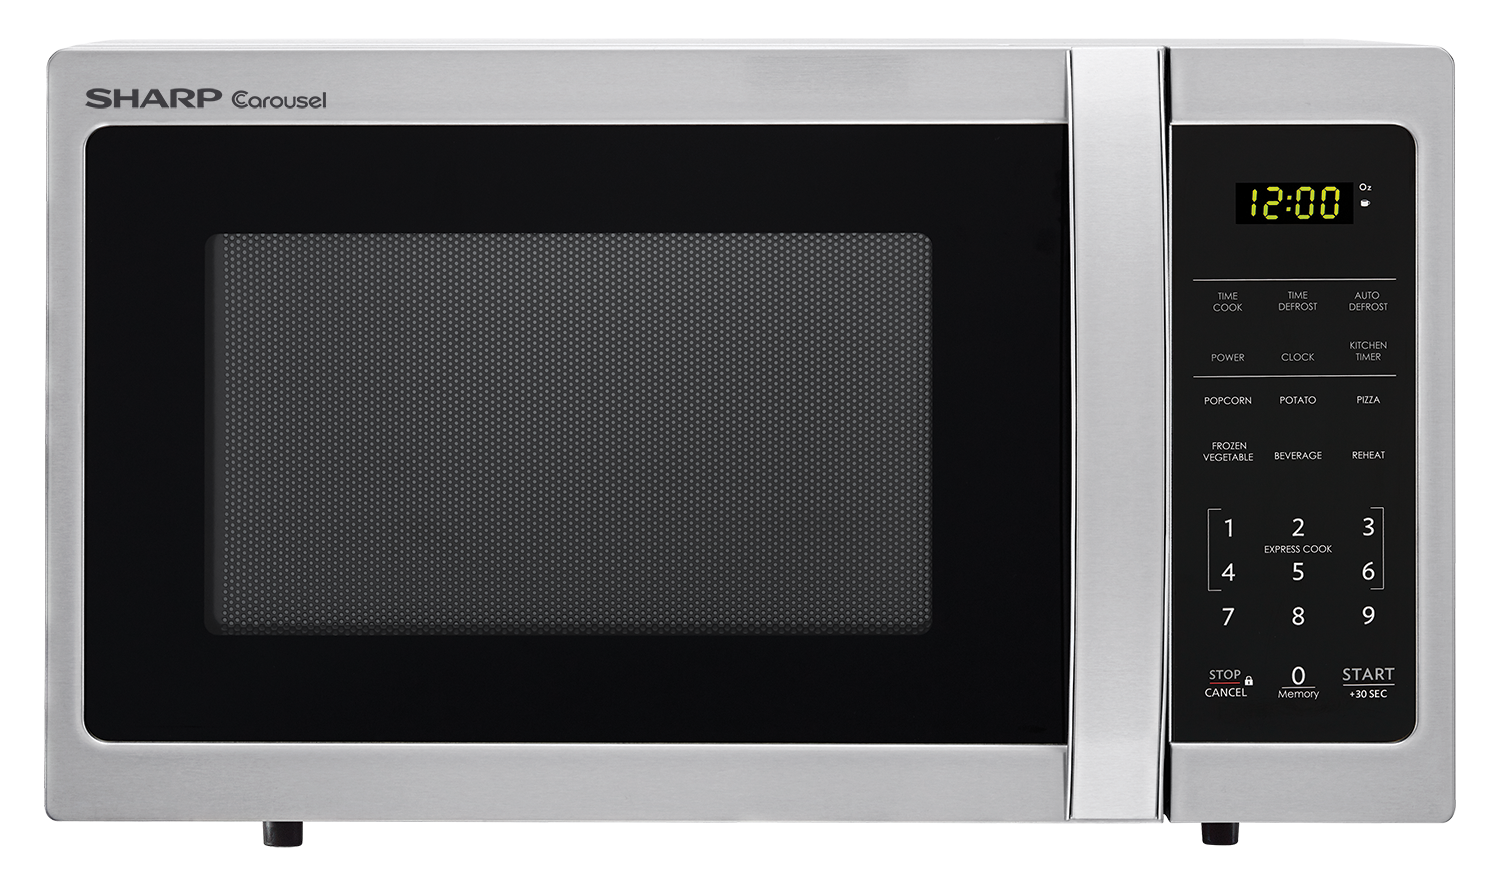 With Innovative Features Like One Touch Controls Auto Defrost And The Carousel Turntable System Sharp Smc0710bw White Microwave Makes